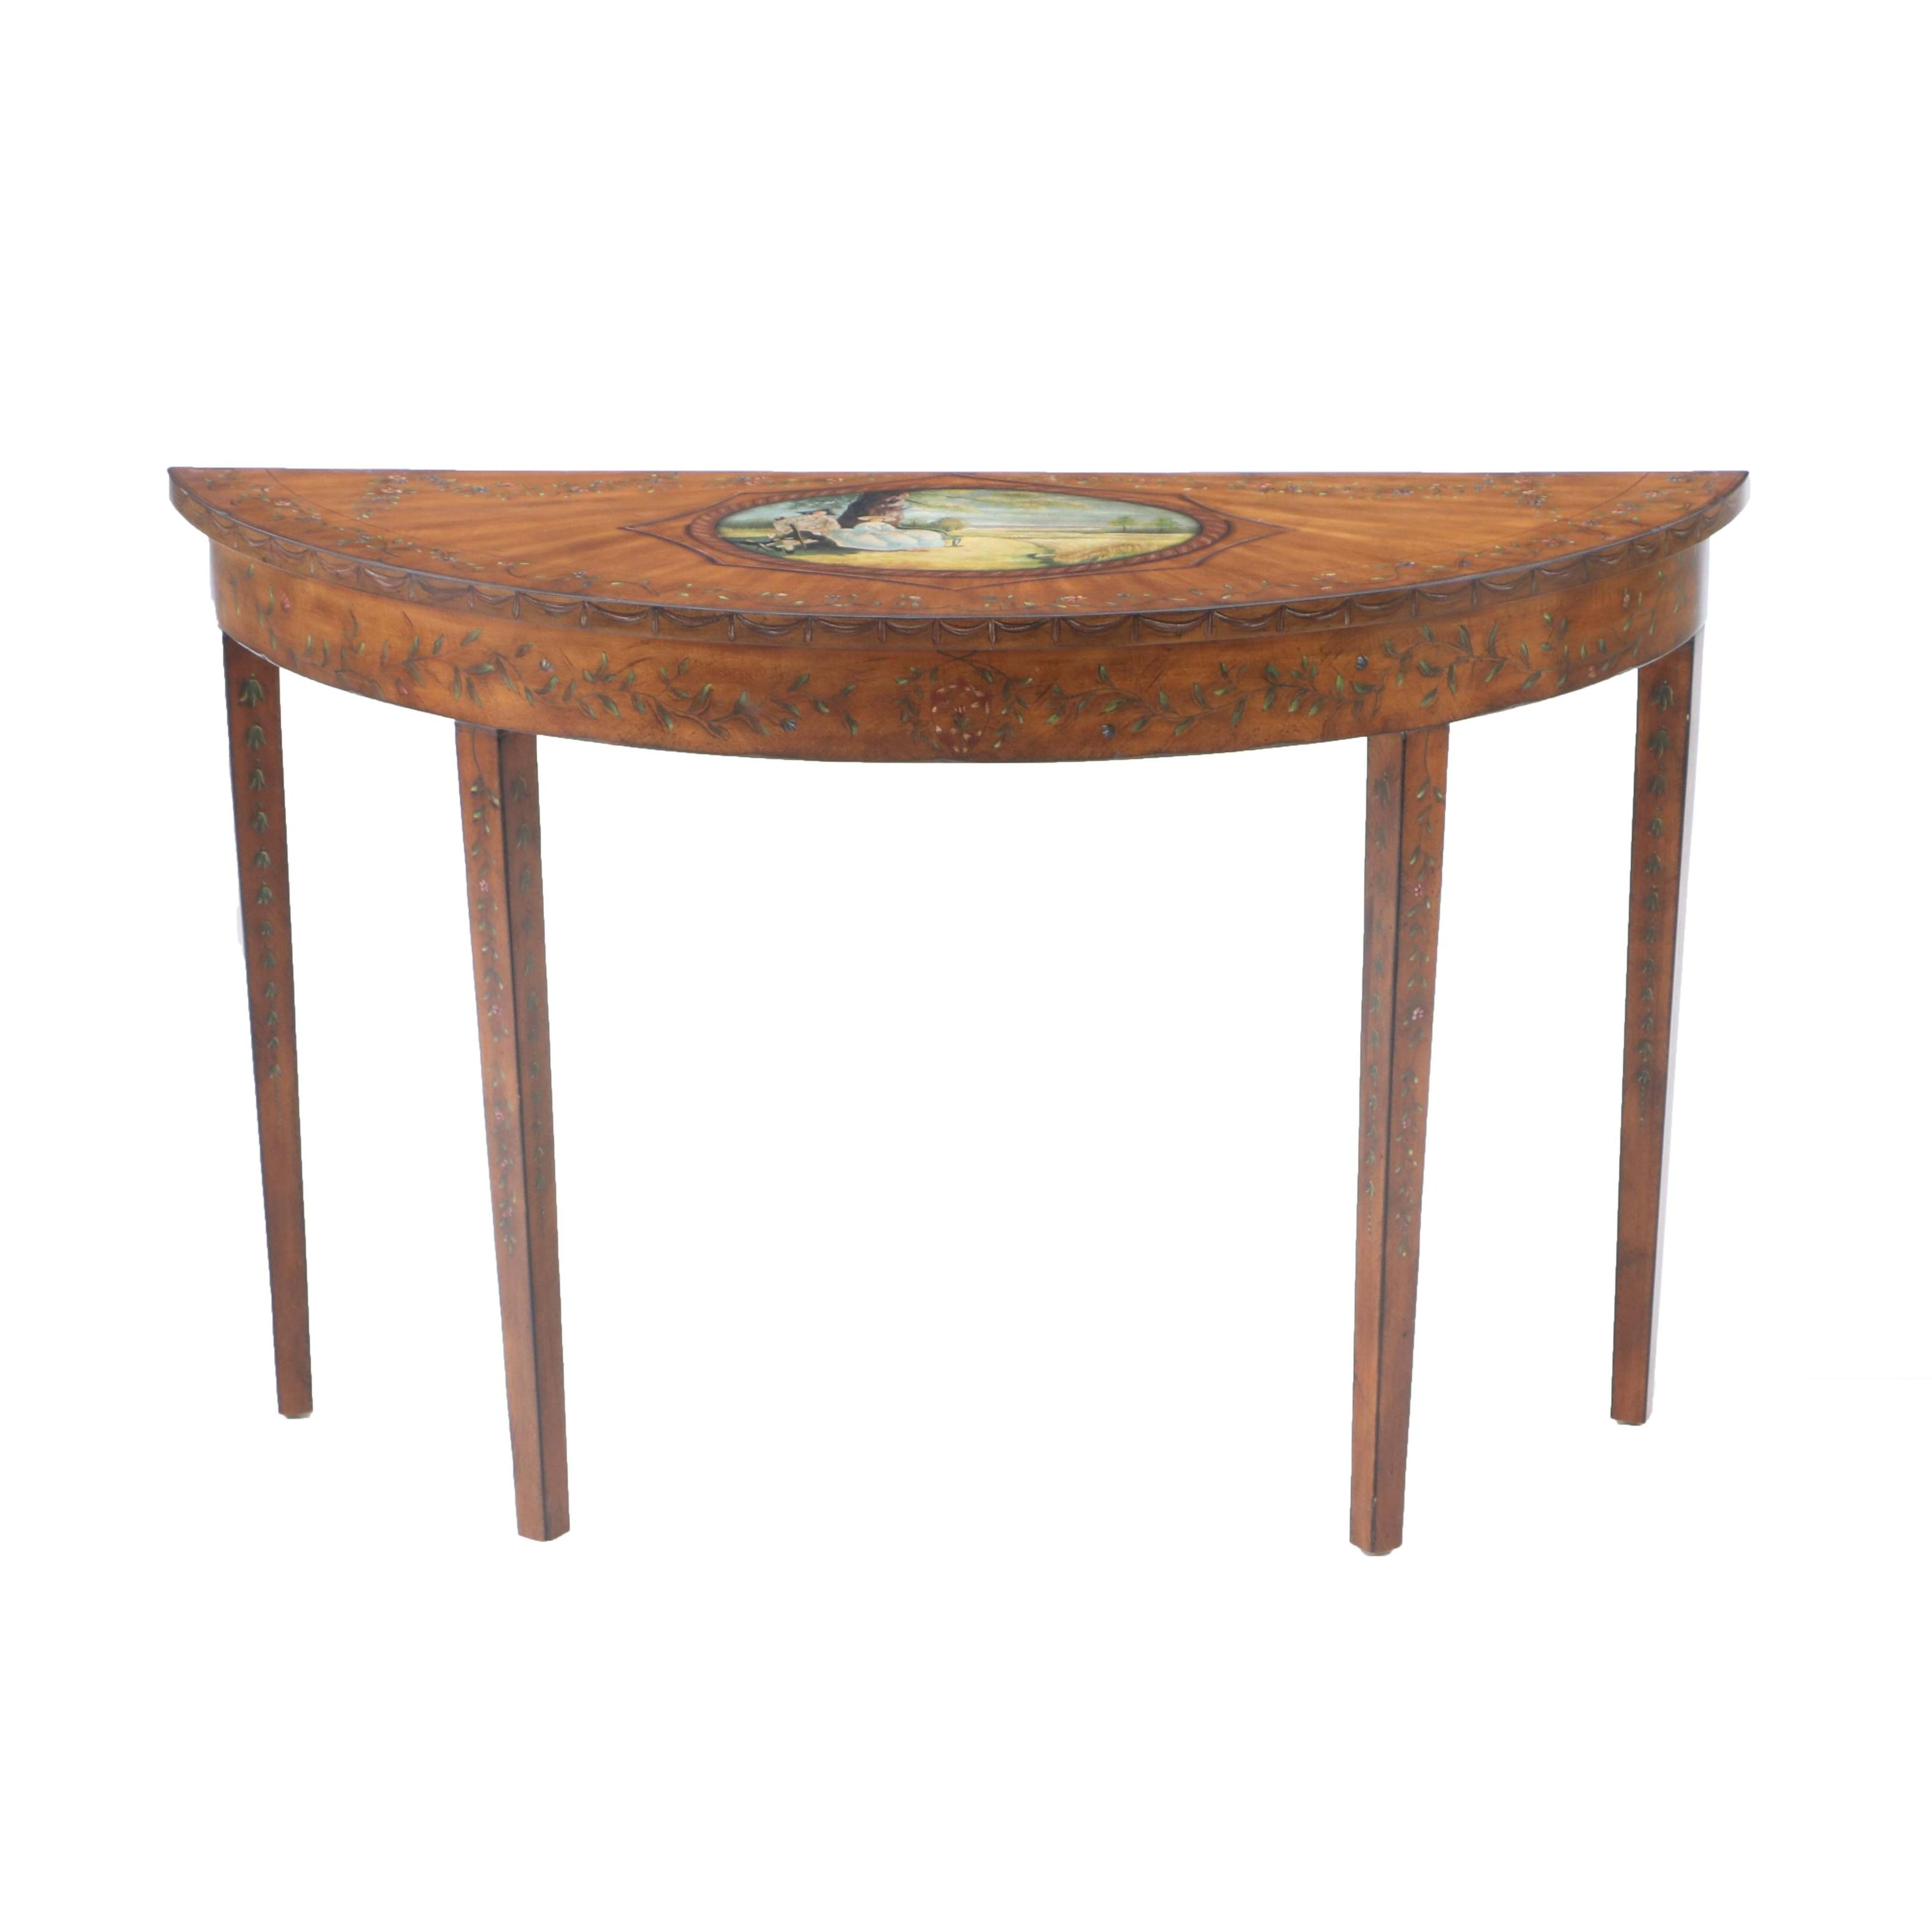 Adams Style Painted Demilune Table